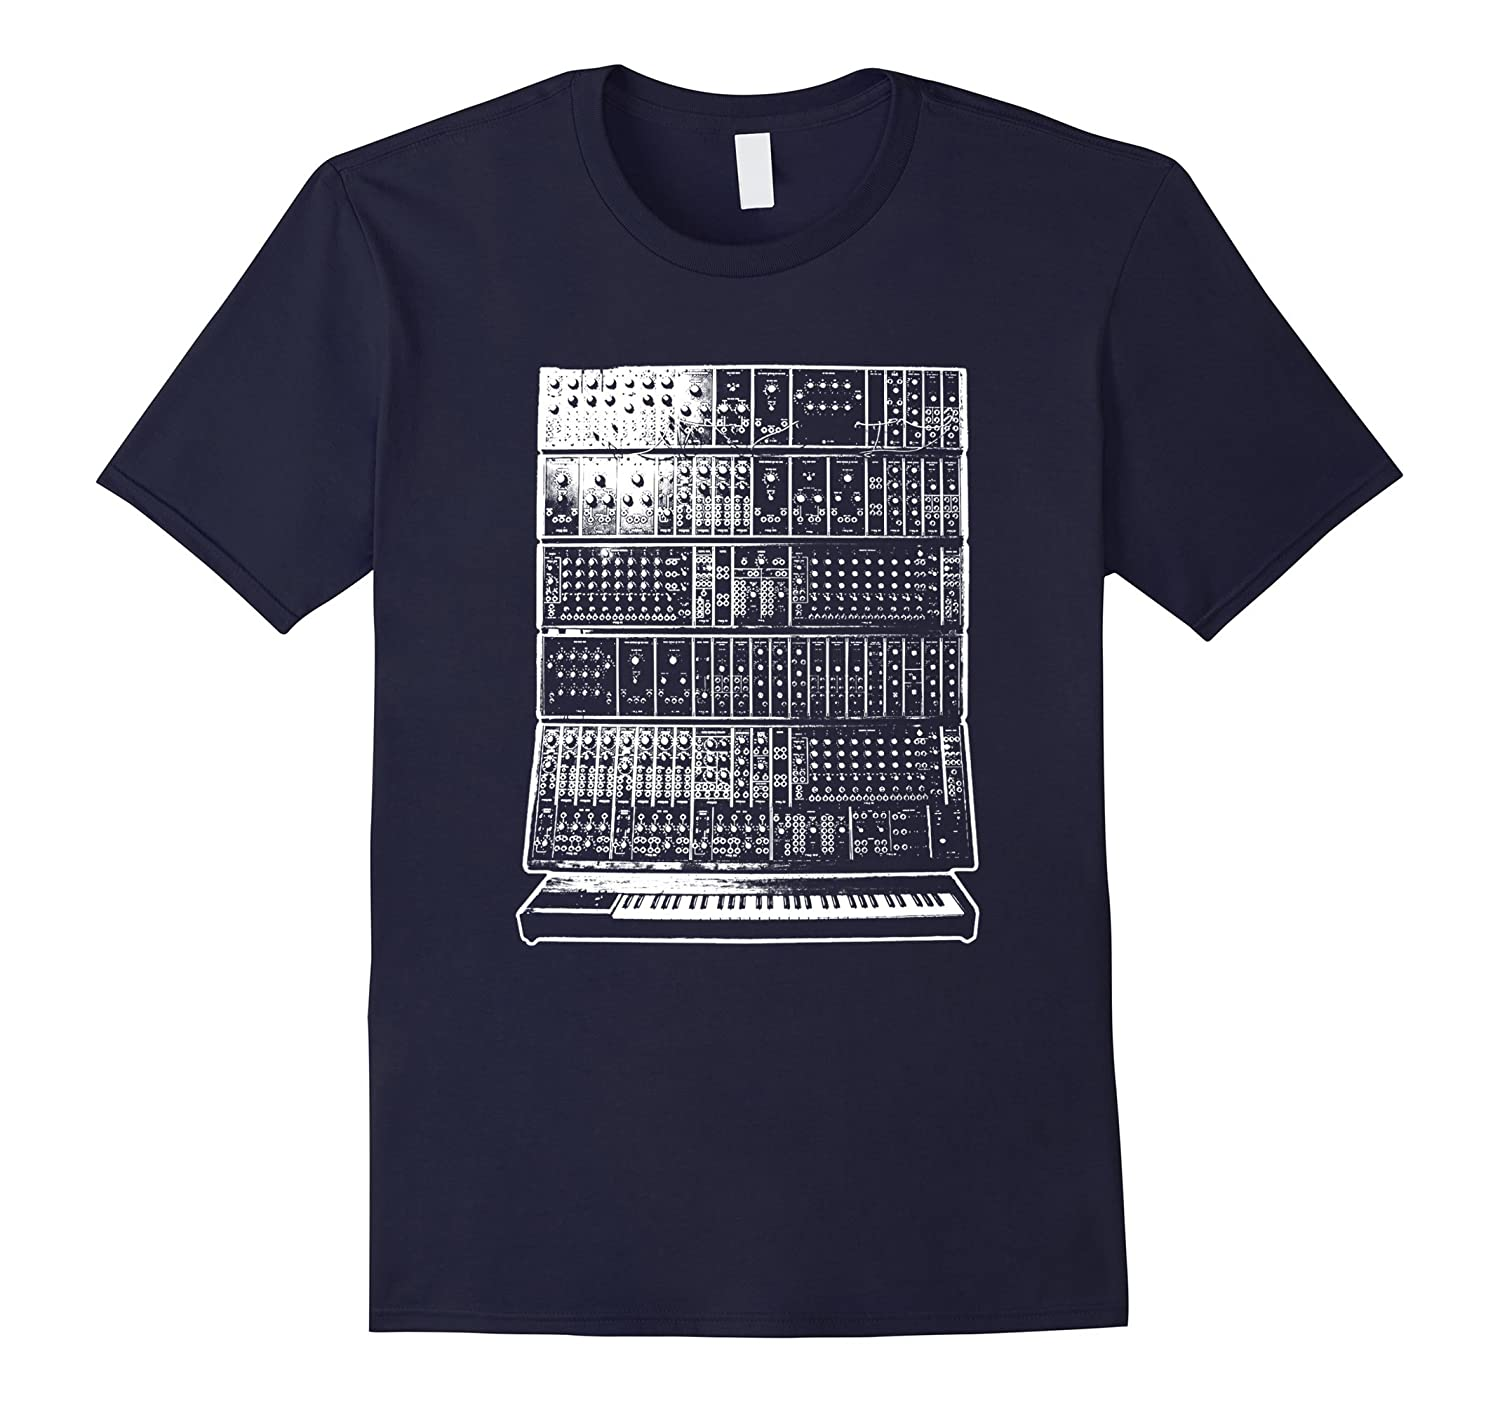 Shirt T Synthesizer T T T Shirt Shirt Shirt Synthesizer Shirt Synthesizer T Synthesizer Synthesizer Synthesizer 4qS3AcRj5L